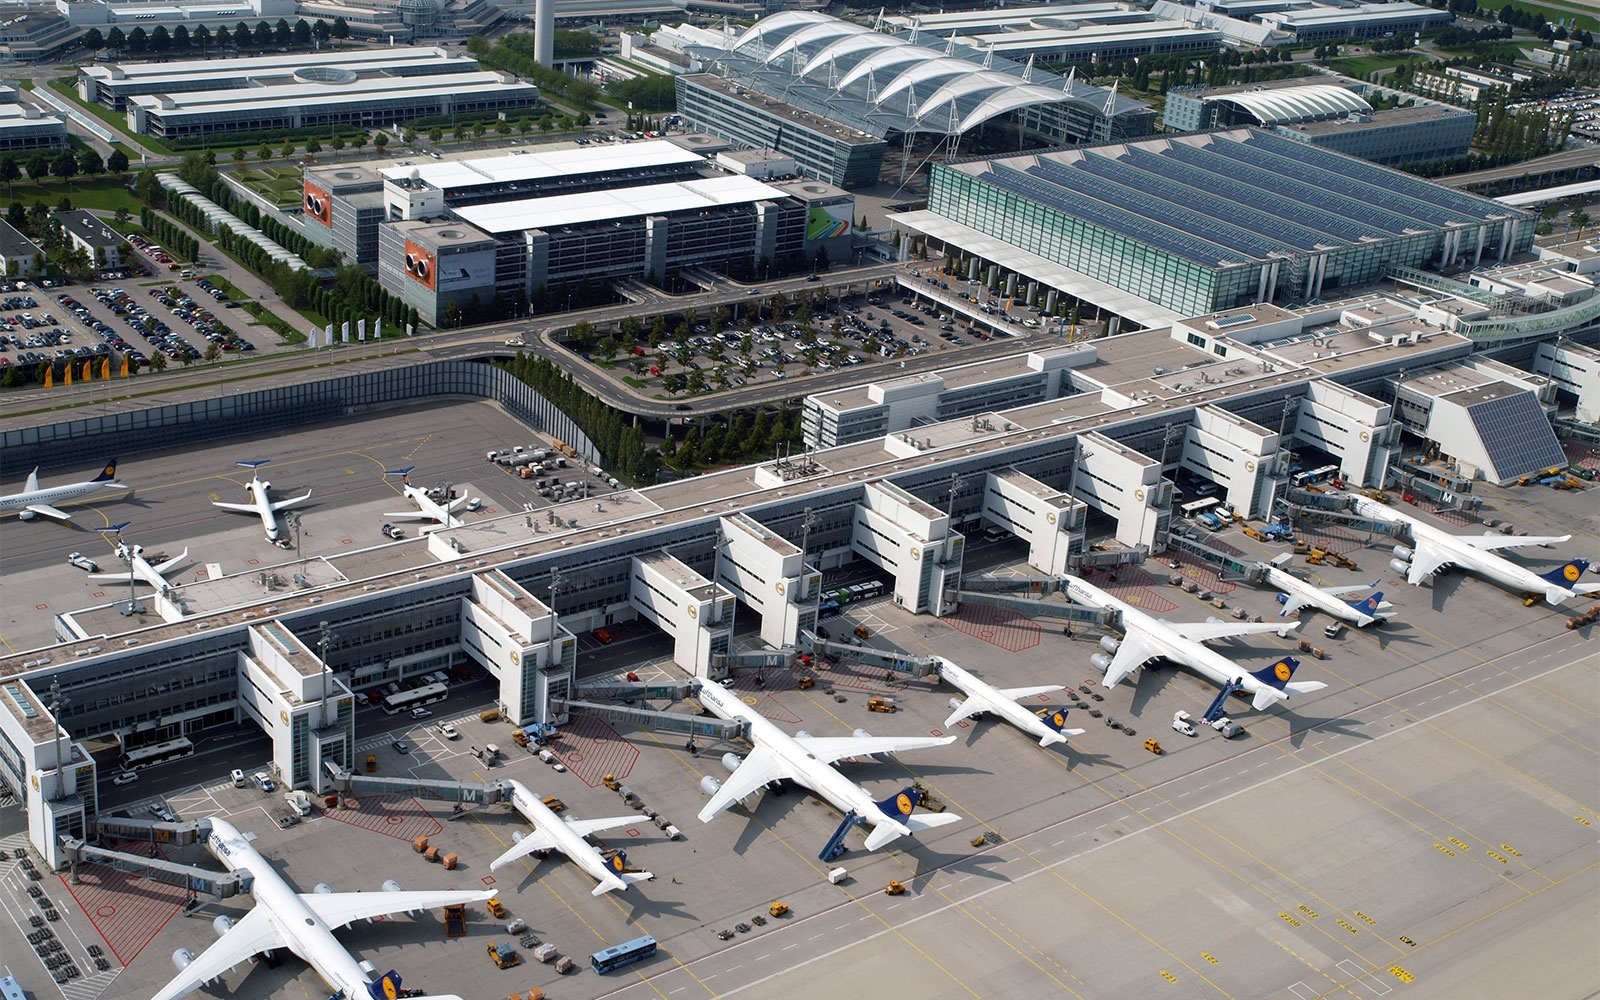 No. 5 International: Munich Airport, Germany